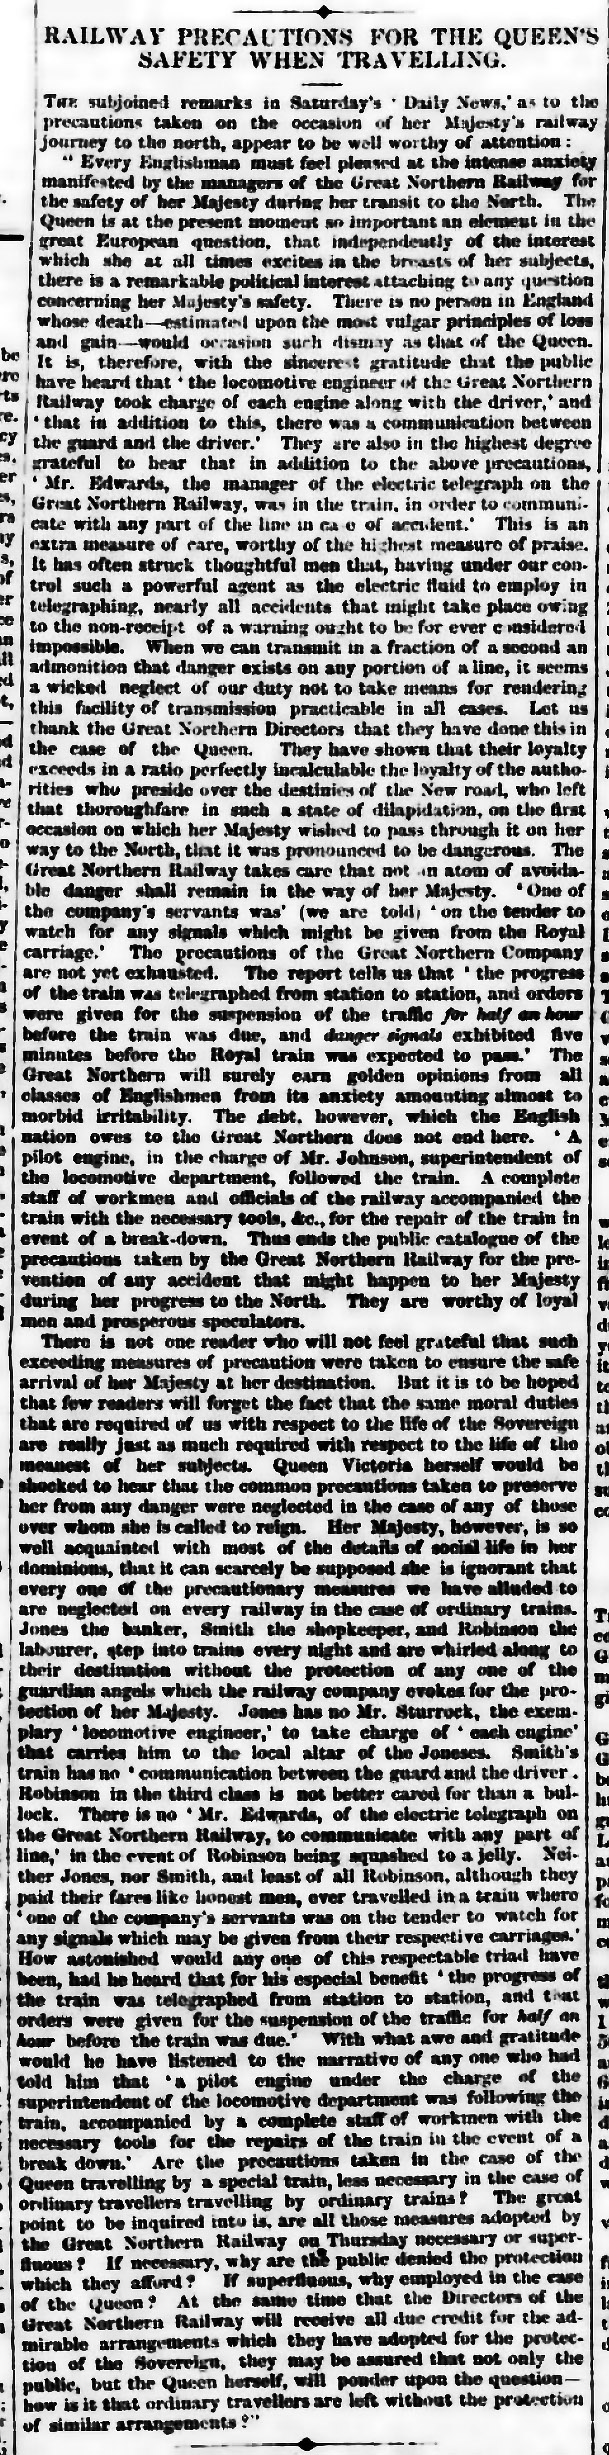 The Chester Chronicle 23rd September 1854, page 2 From The British Newspaper Archive Image © THE BRITISH LIBRARY BOARD. ALL RIGHTS RESERVED